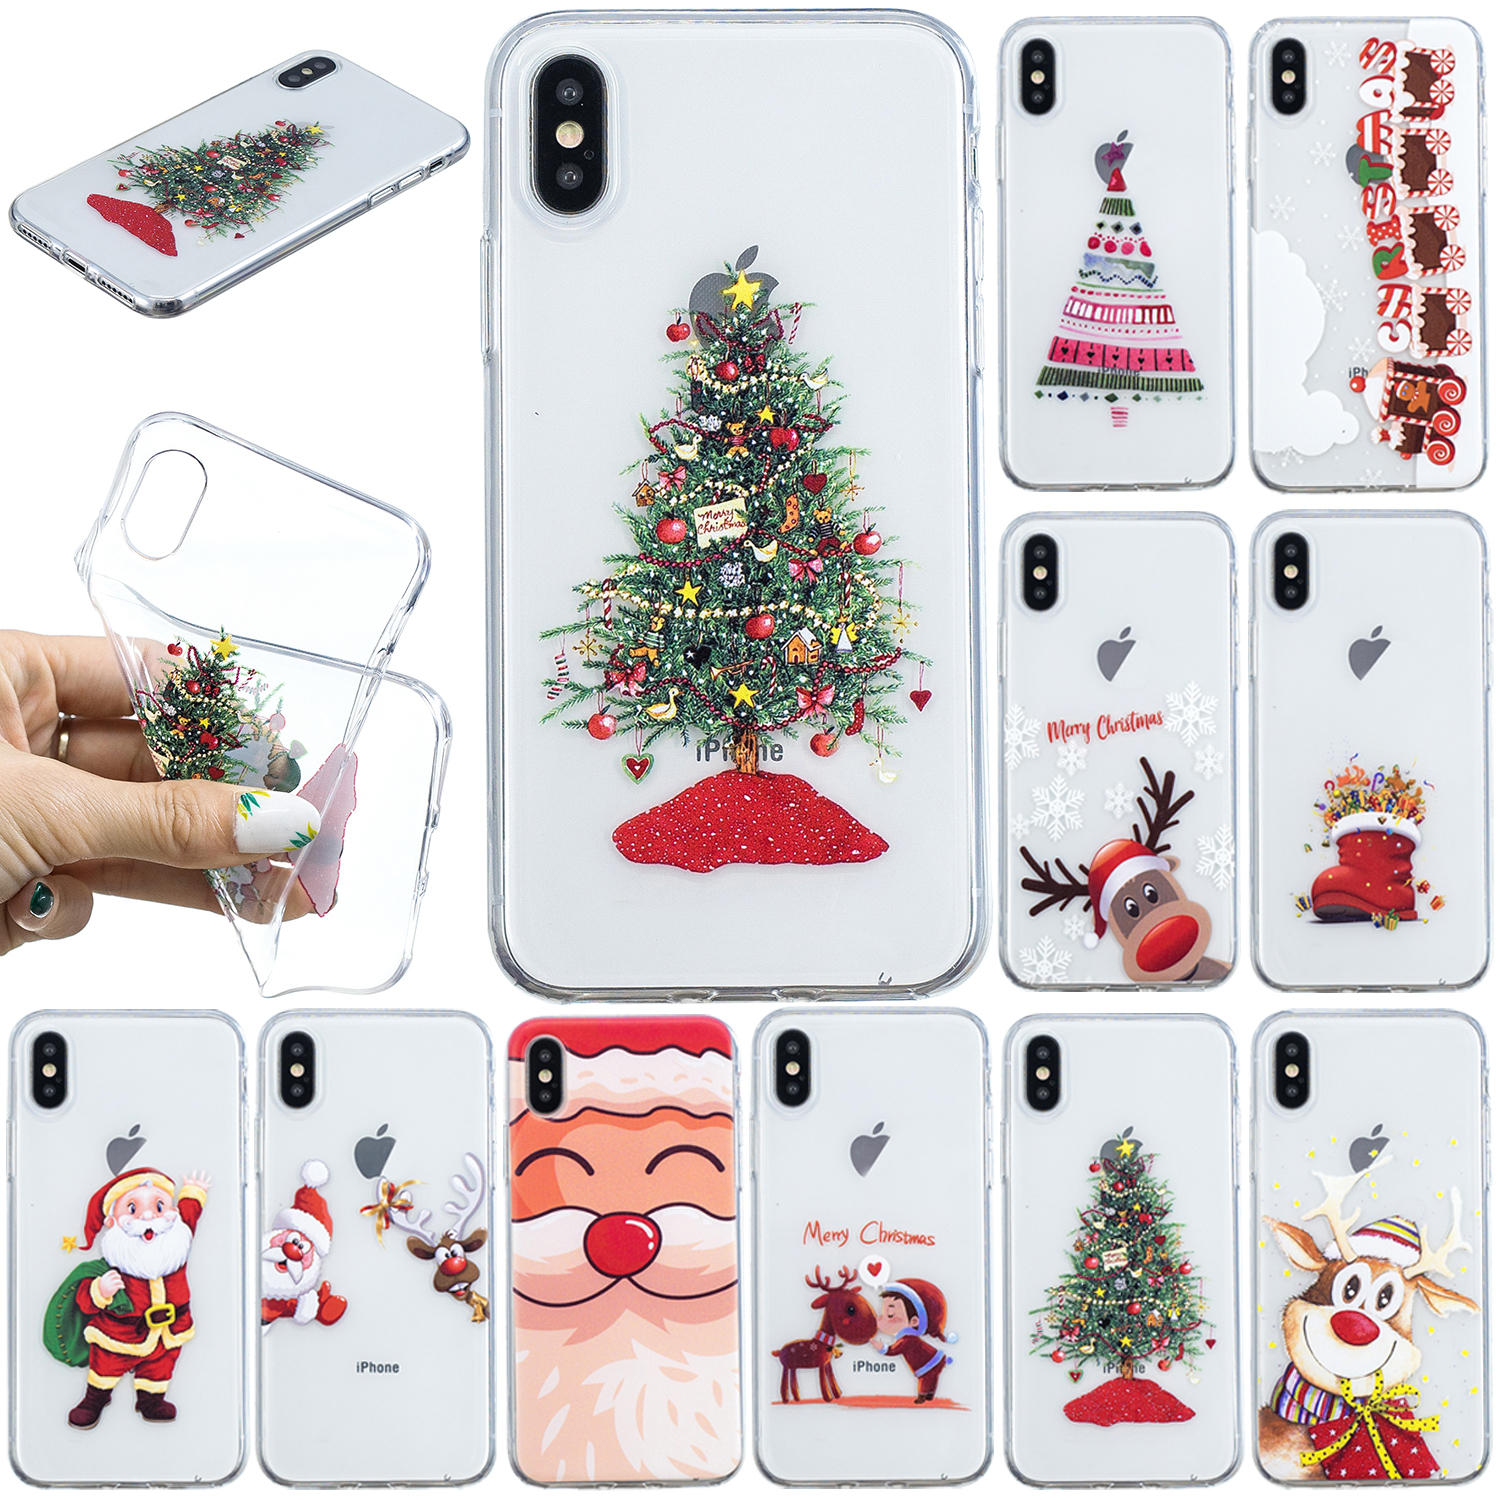 Christmas Iphone X Case.Details About For Iphone X Xs Max Xs 7 8 Plus Christmas Painted Clear Silicone Case Cover